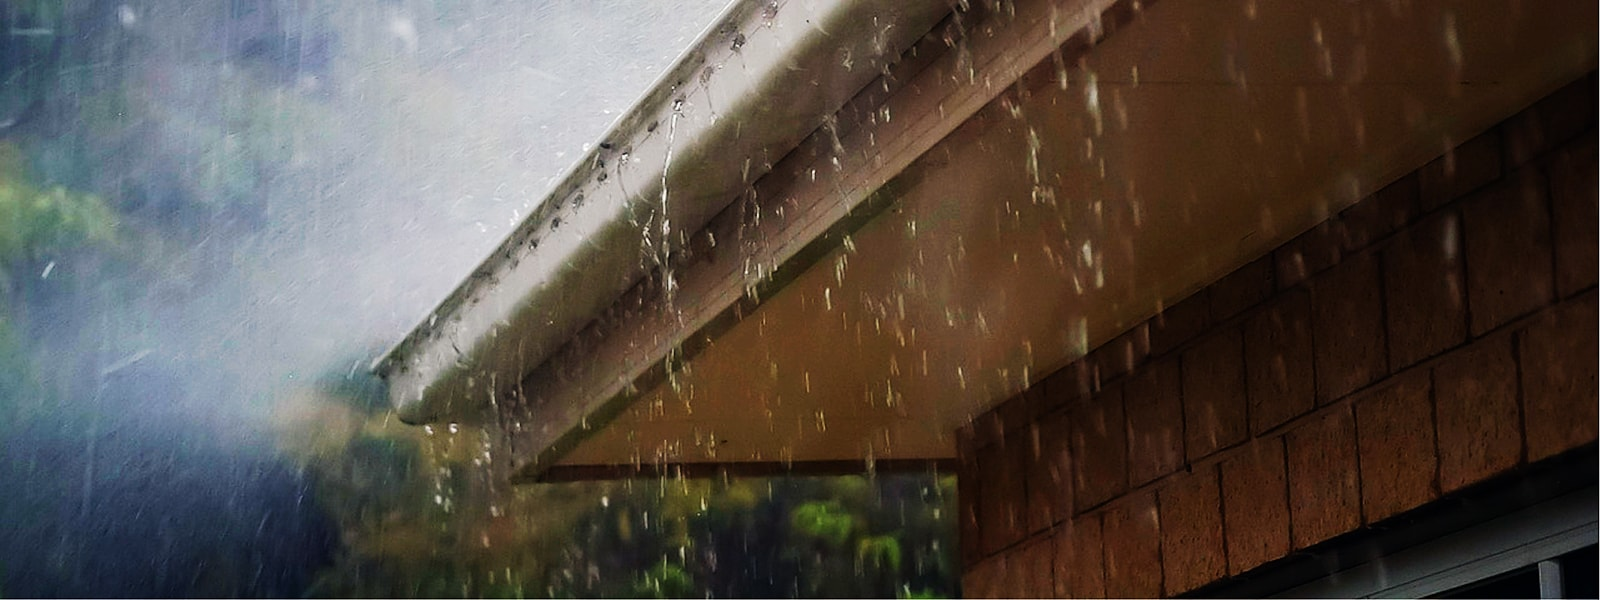 Clogged Overflowing Gutters